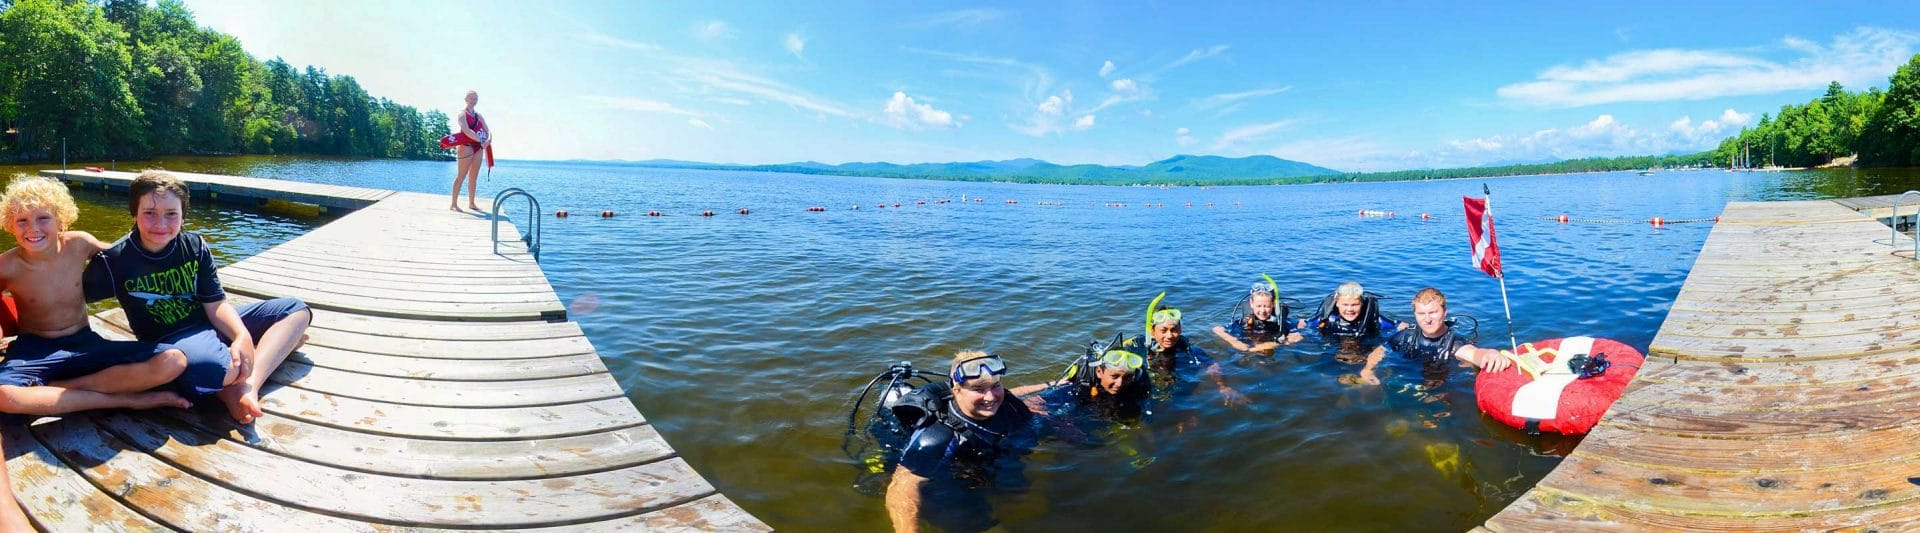 group of young campers practicing scuba diving at the lake